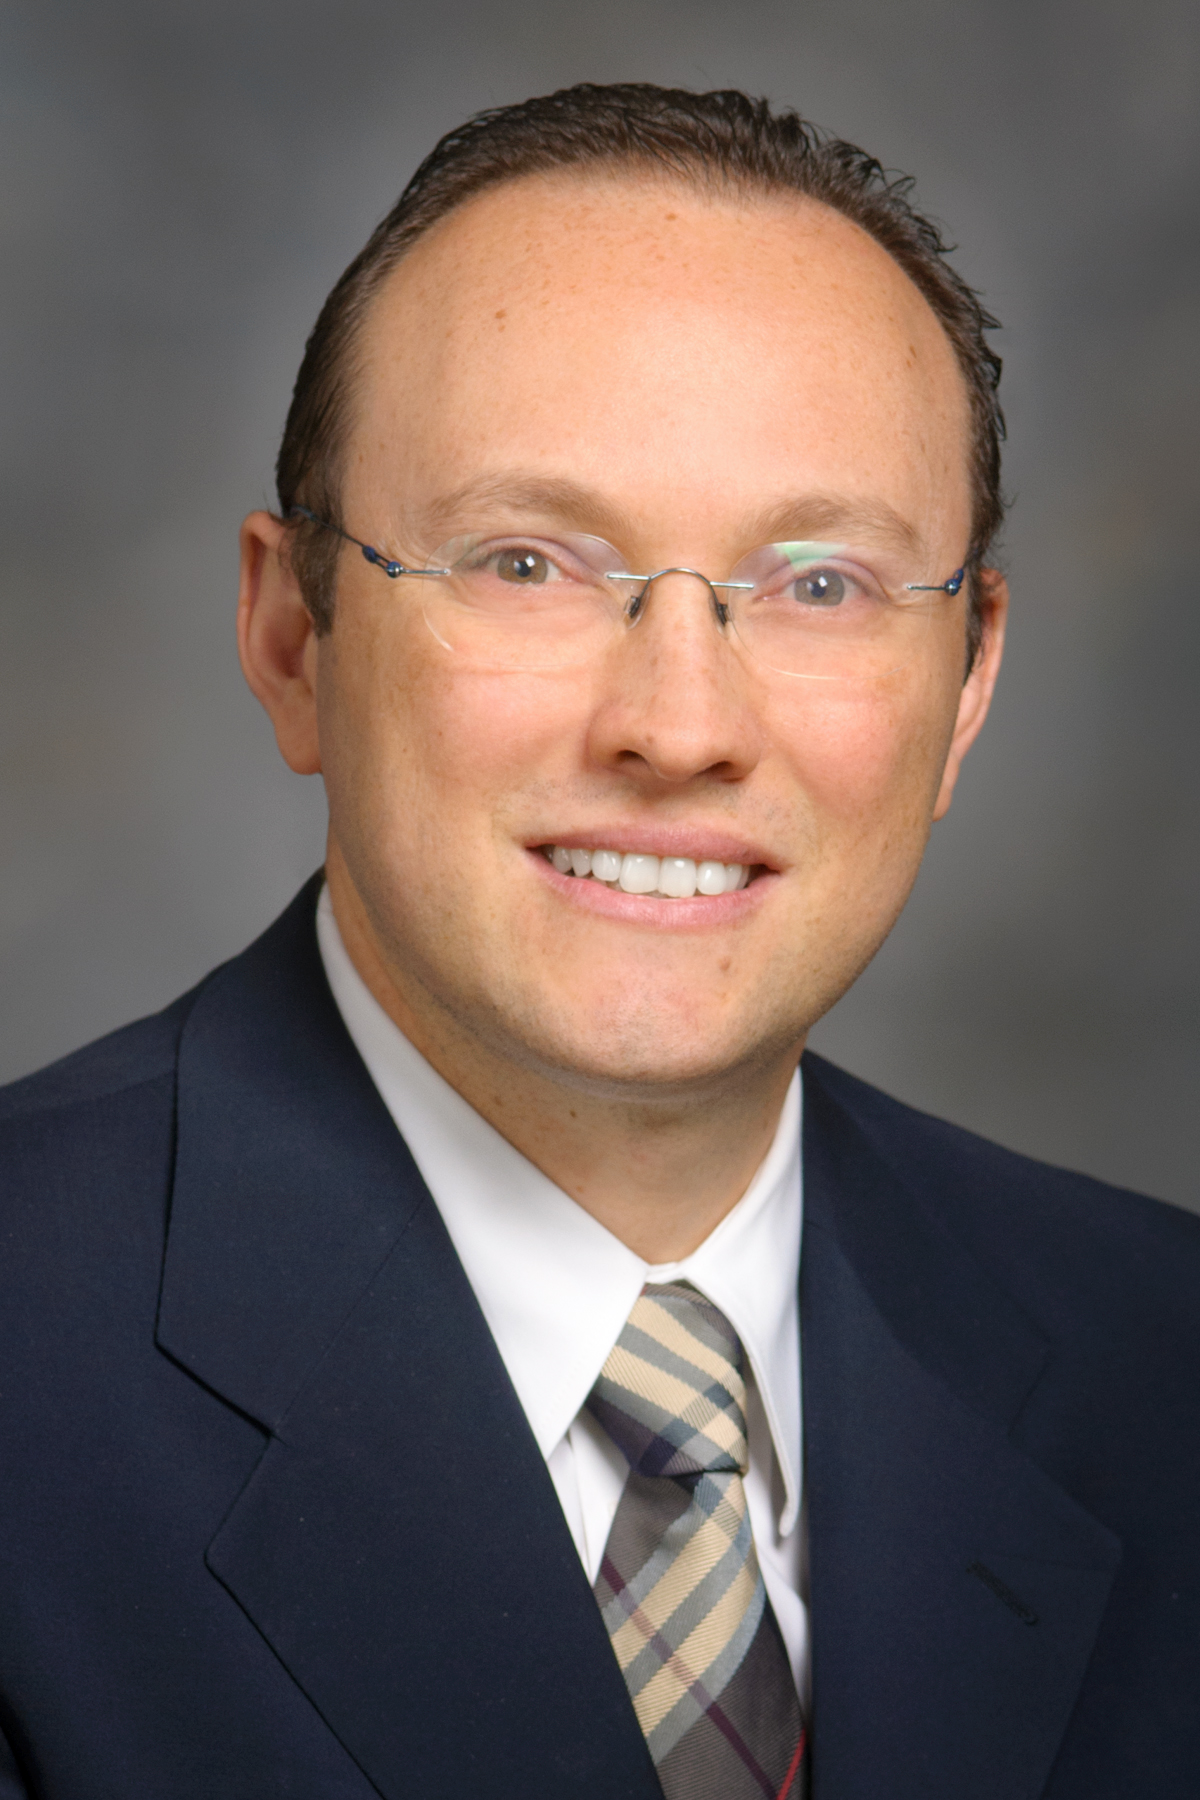 Victor Hassid, MD YPS Steering Committee